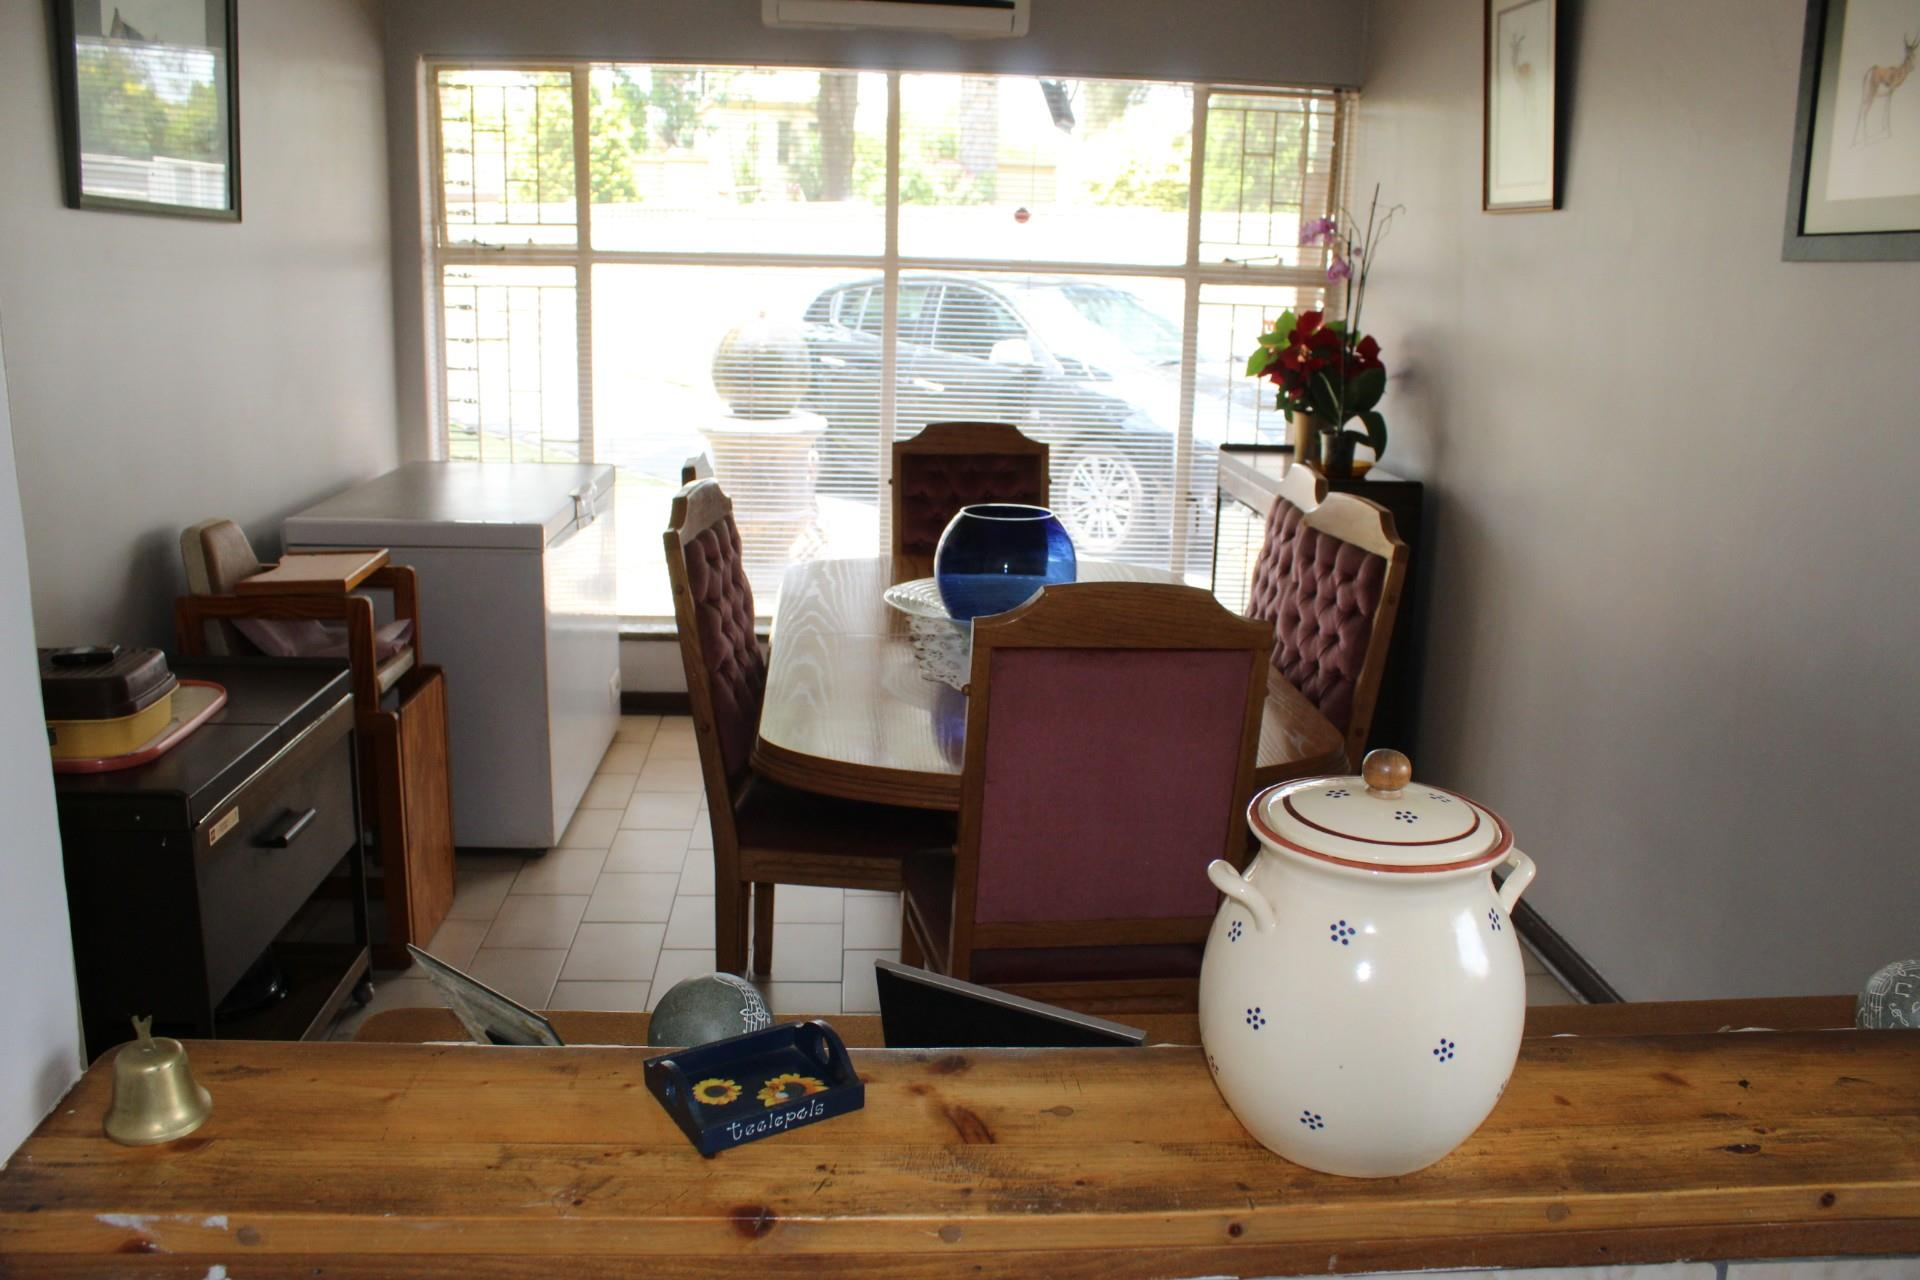 3 Bedroom House For Sale in Risiville